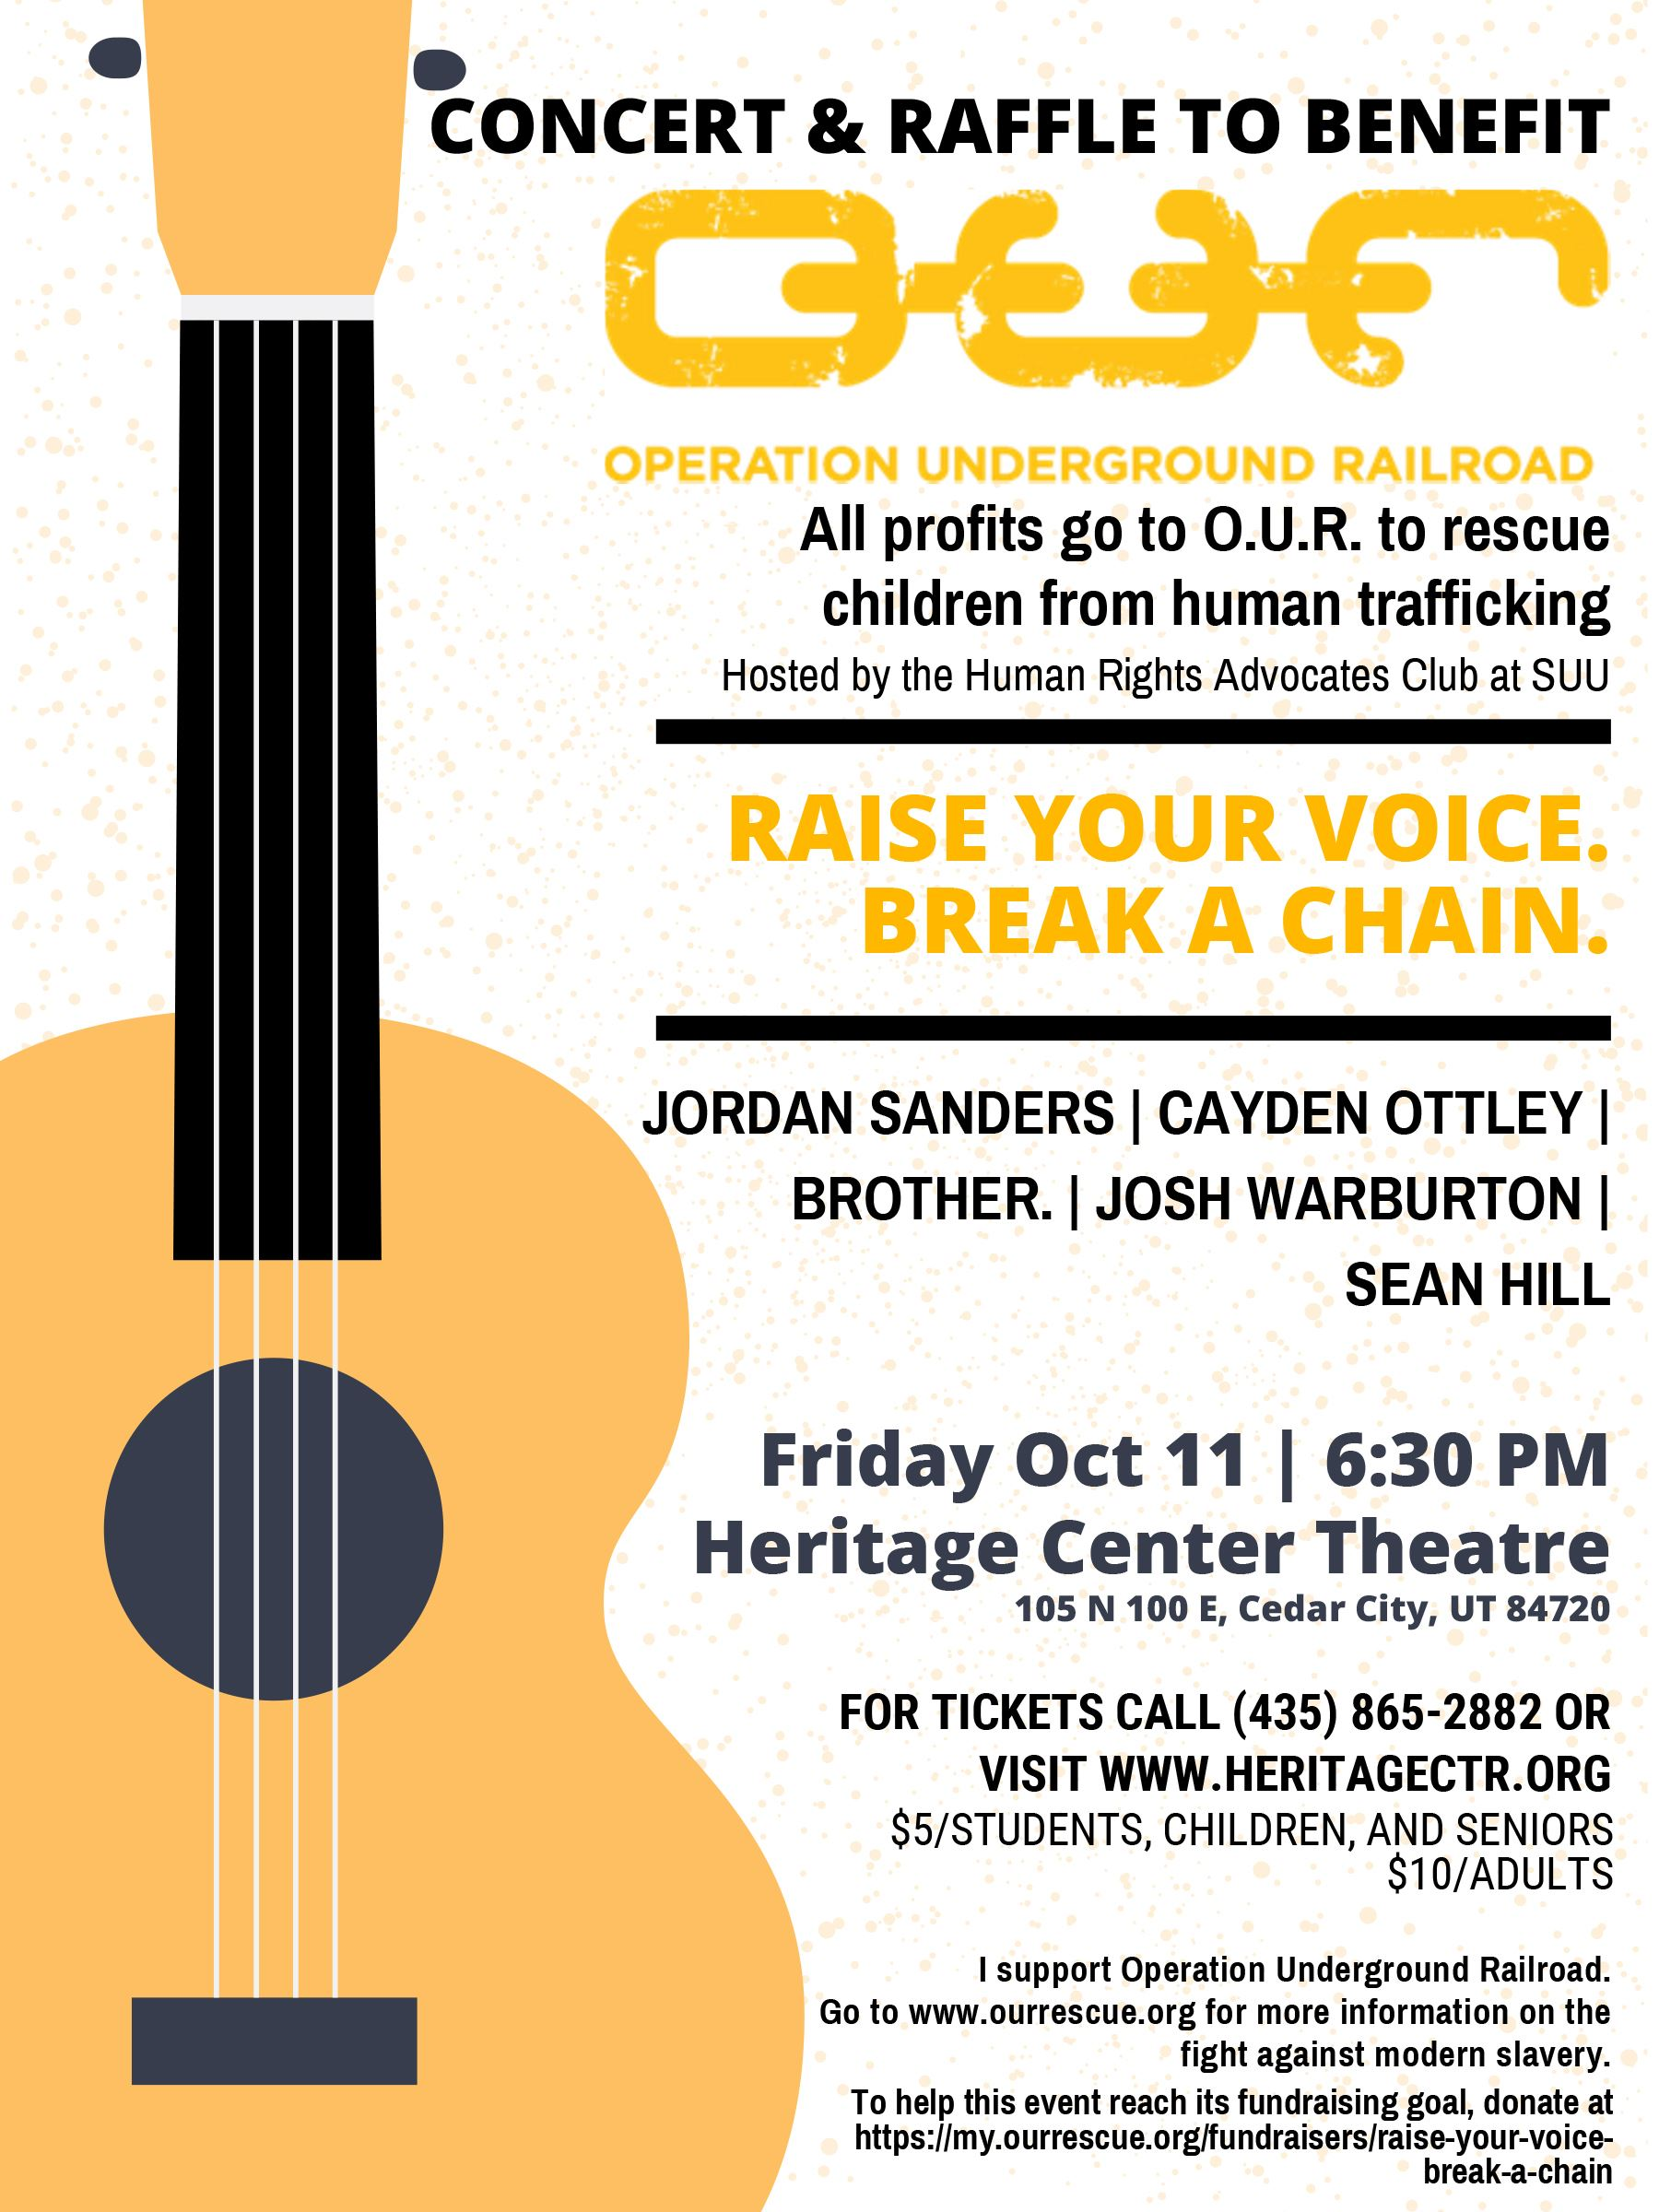 A1 October 11 Benefit Concert Poster